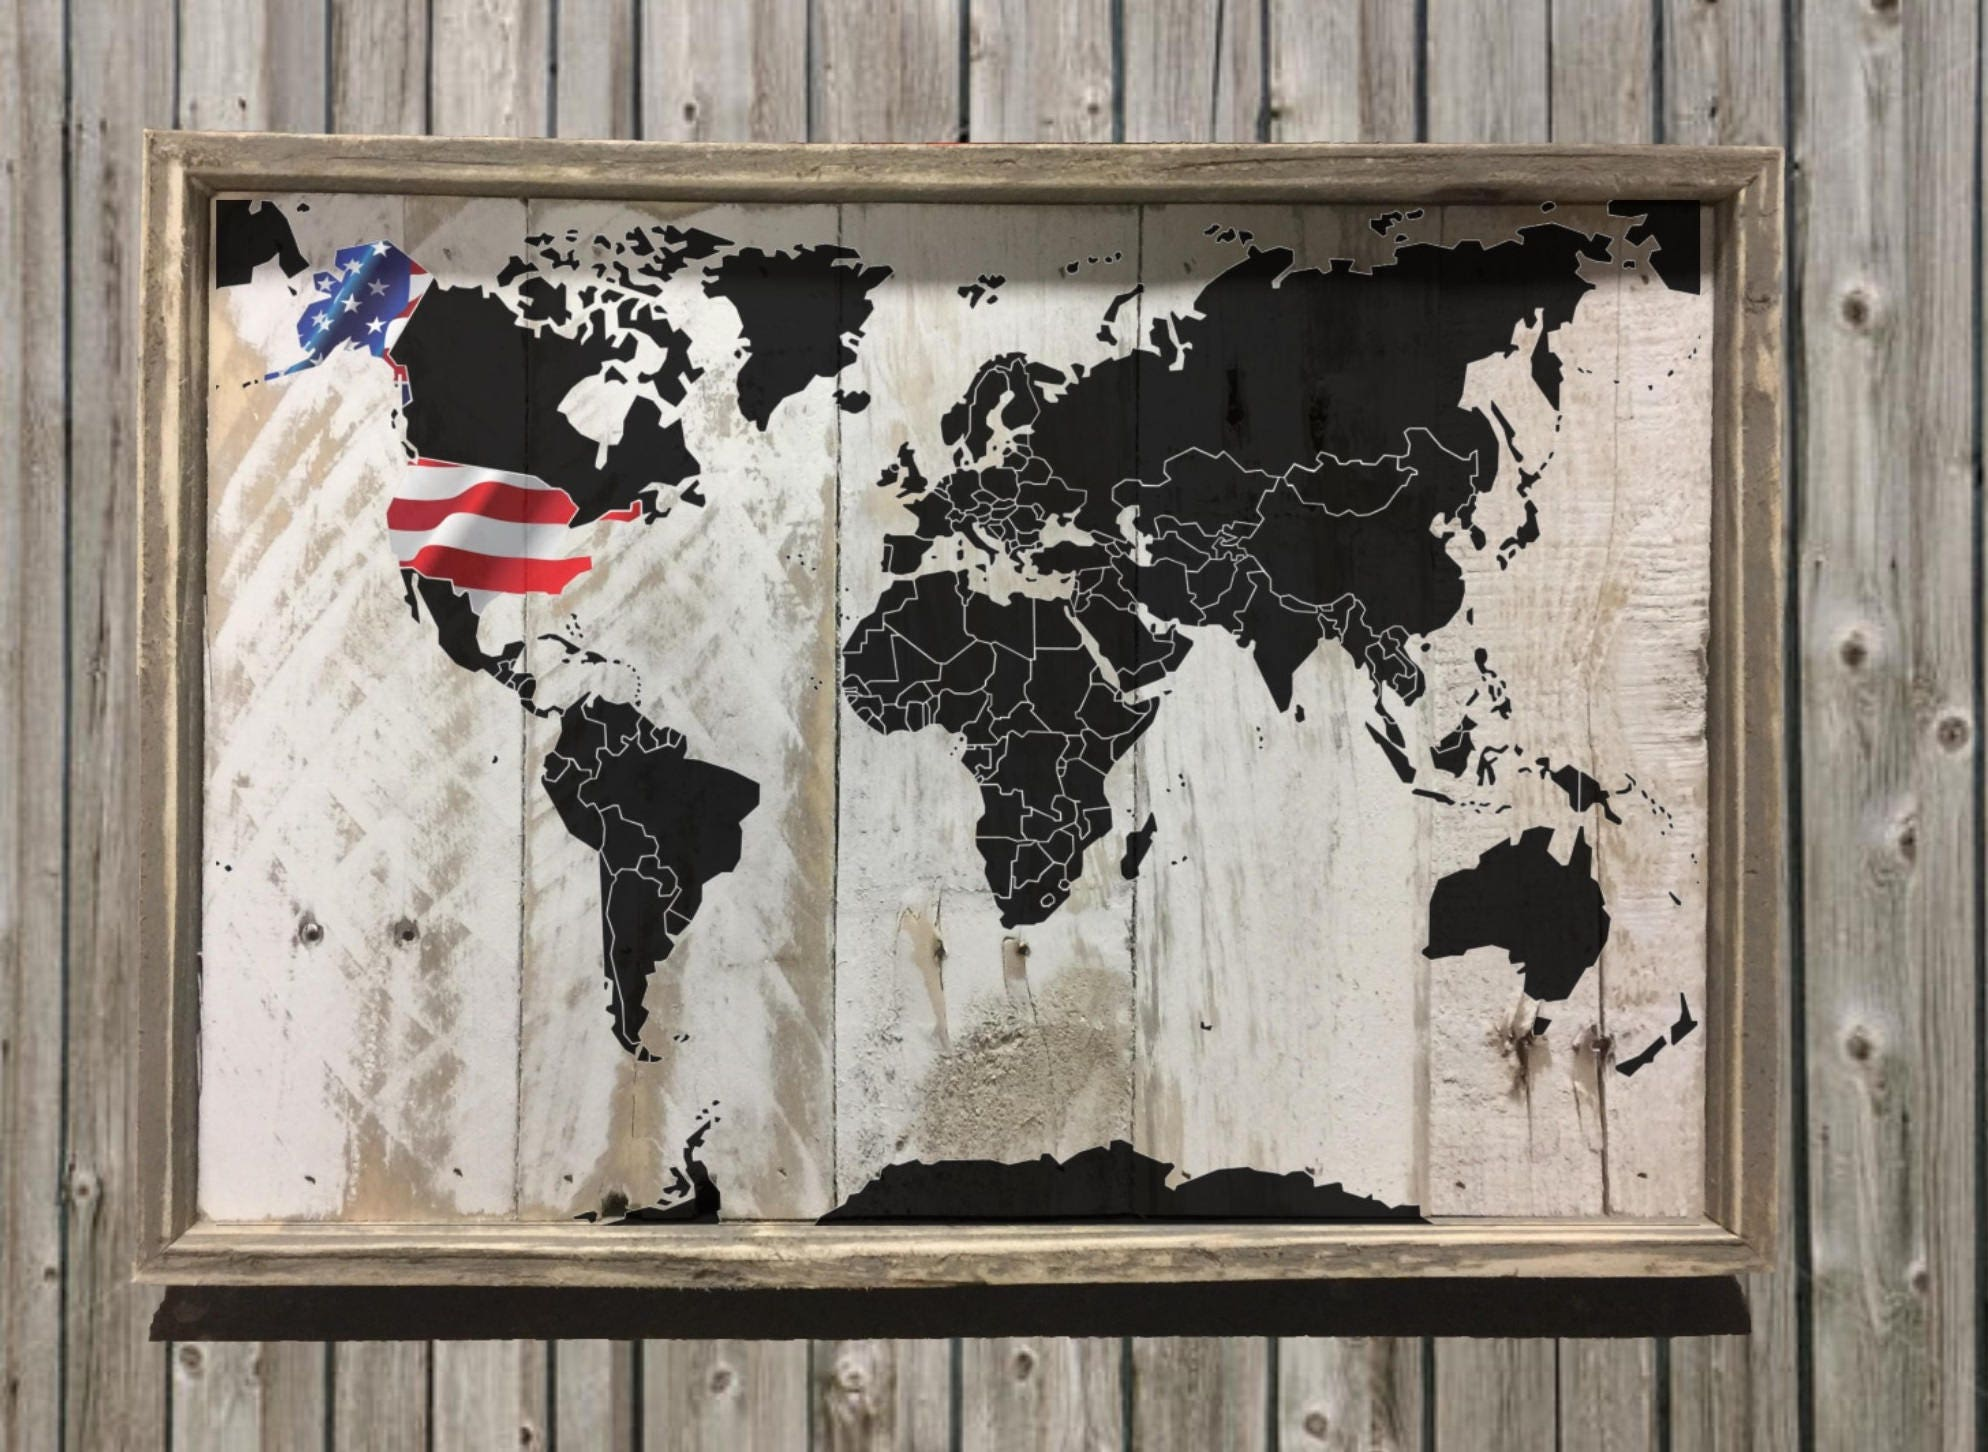 Usa world map decor home kitchen images one of a kind item usa world map decor home kitchen images one of a kind item perfect as a present for any occasion interior reclaimed wood decor gumiabroncs Image collections